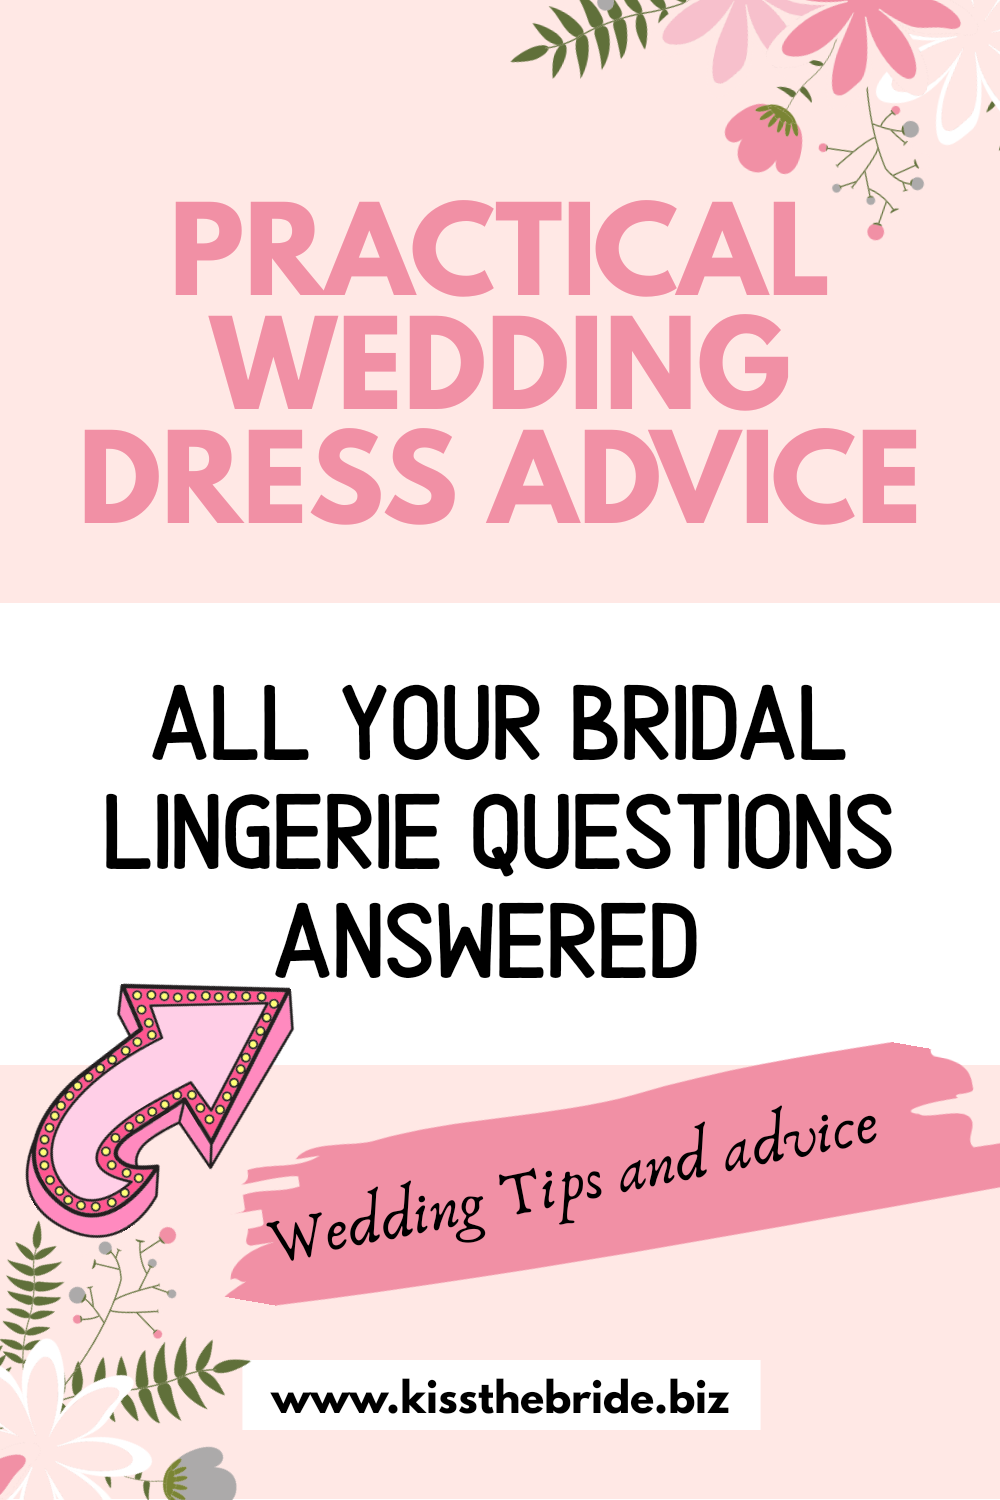 Wedding Lingerie advice